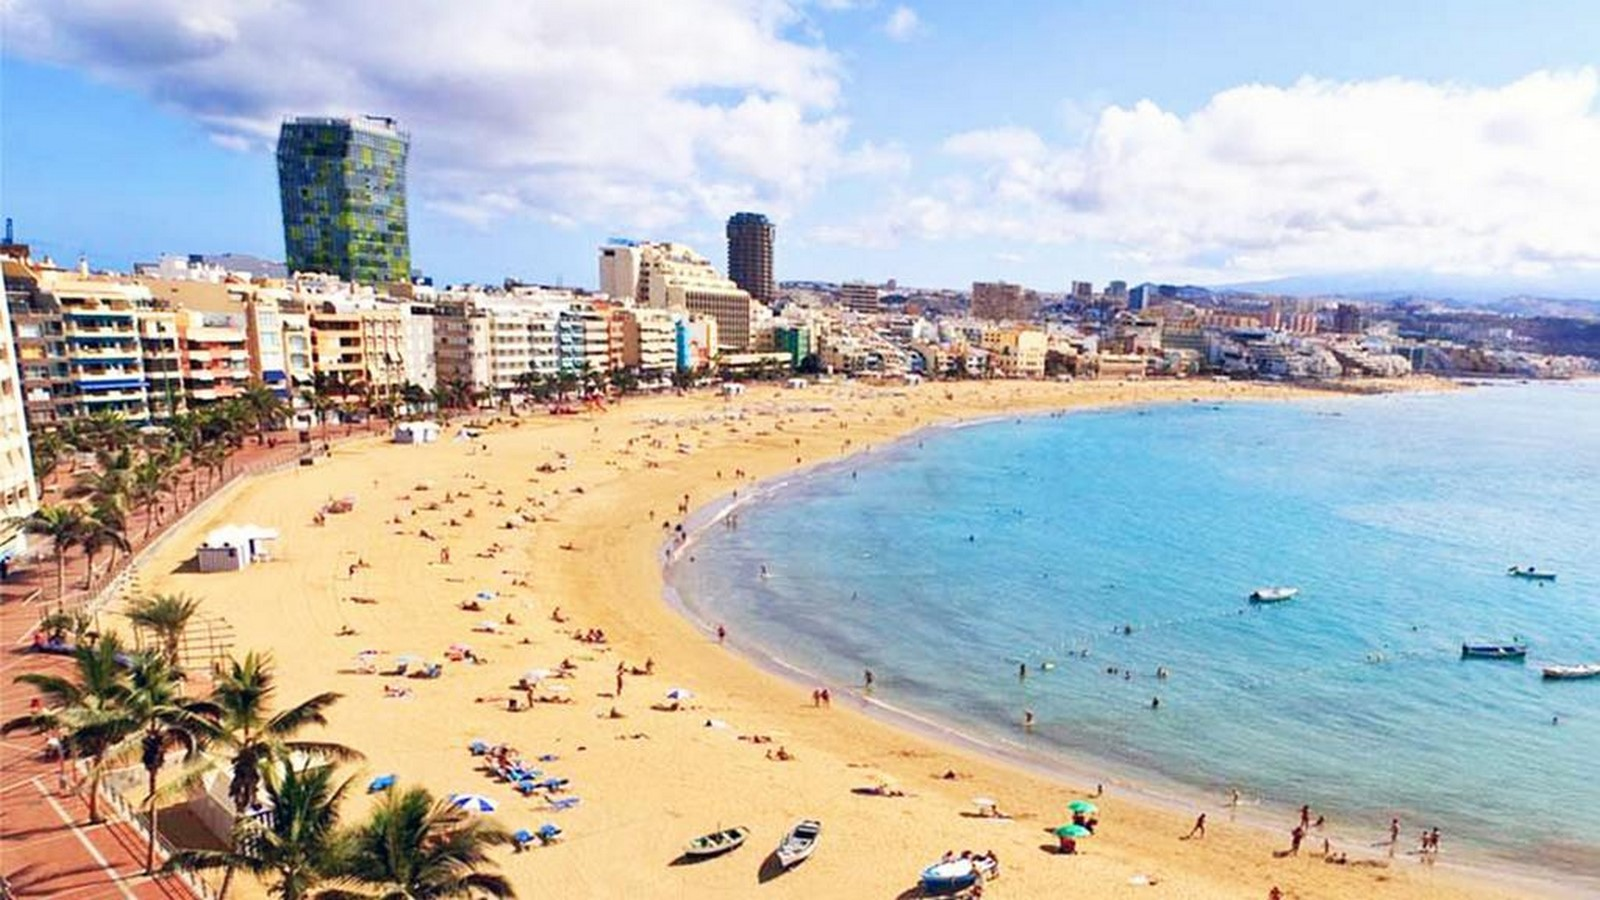 Architecture of Cities: Las Palmas: One of the largest cities in Spain Sheet4